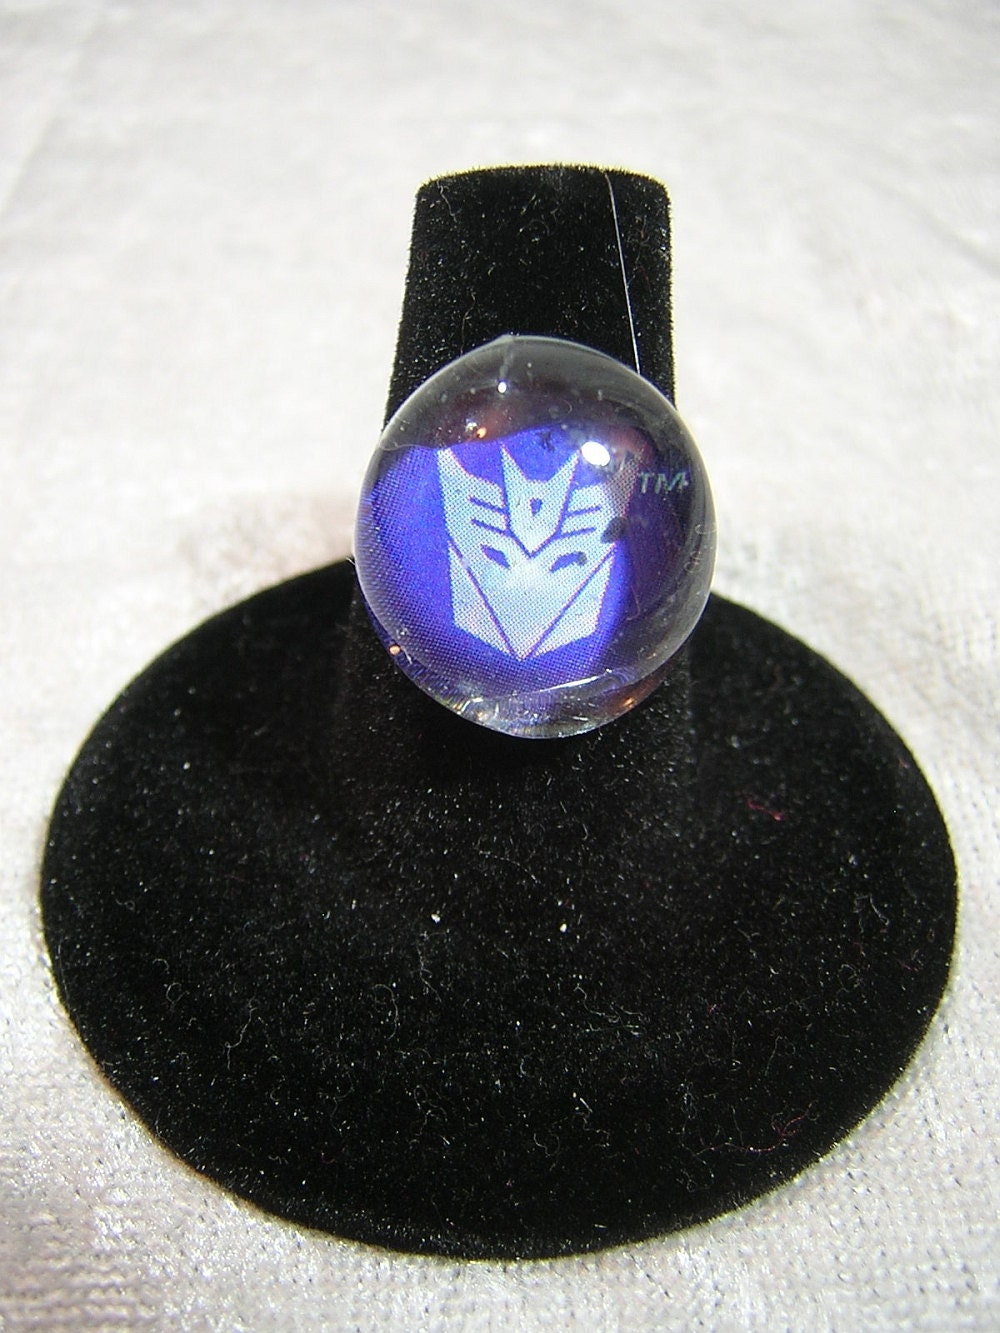 Decepticon Transformers Glass Pebble Ring with Adjustable Band - Handmade by Rewondered D225R-00007 - $5.95